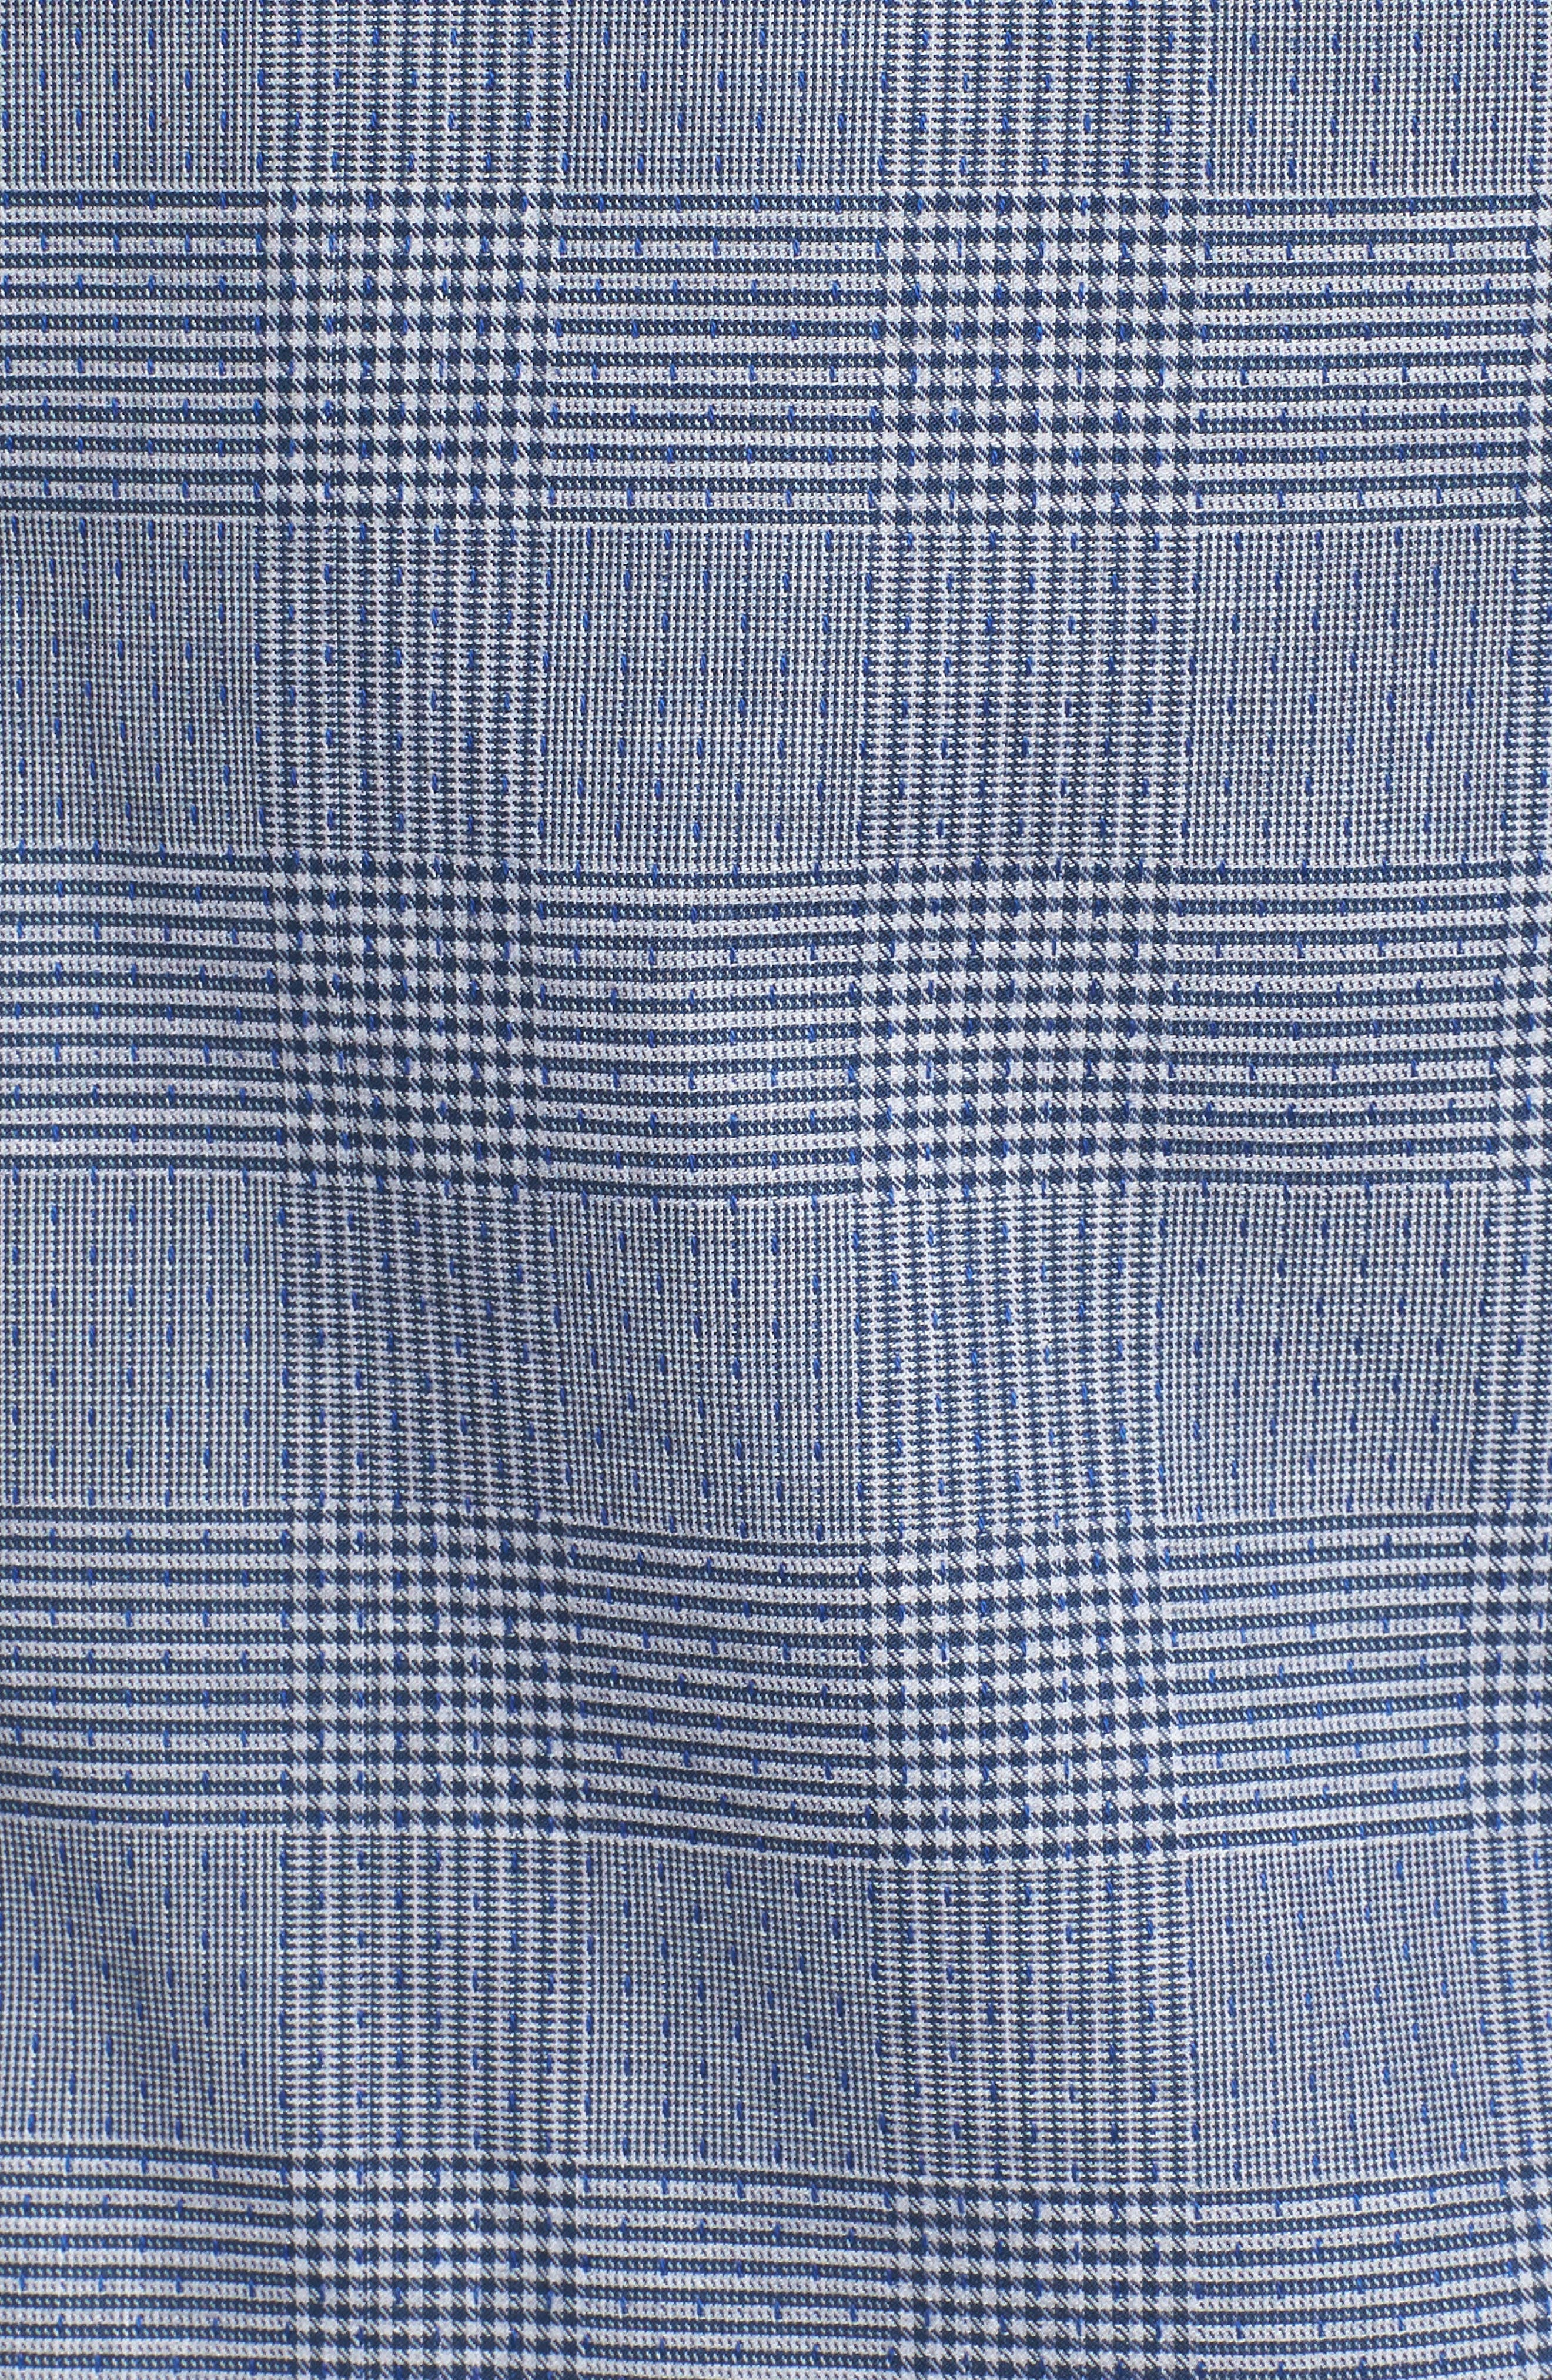 Hacking Slim Fit Glen Plaid Sport Shirt,                             Alternate thumbnail 5, color,                             Navy Check With Blue Dobby